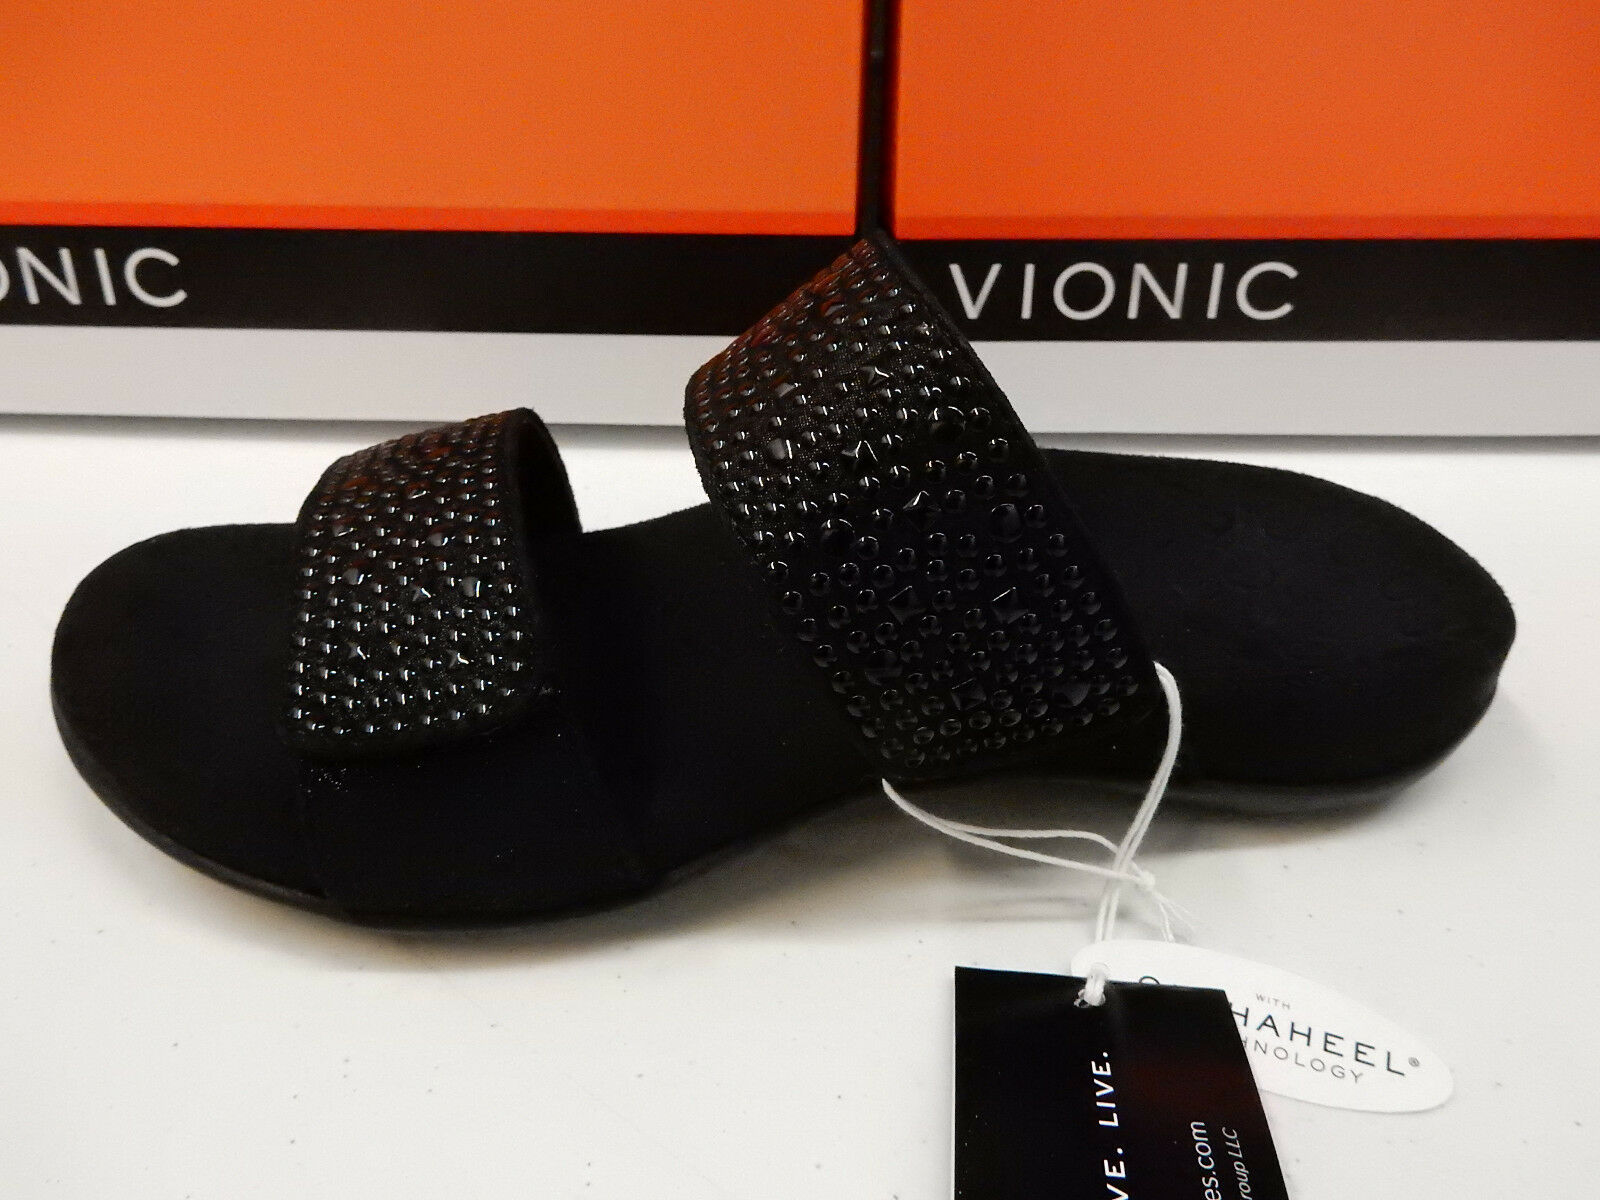 VIONIC WOMENS SANDALS SAMOA BLACK SIZE 10 WIDE